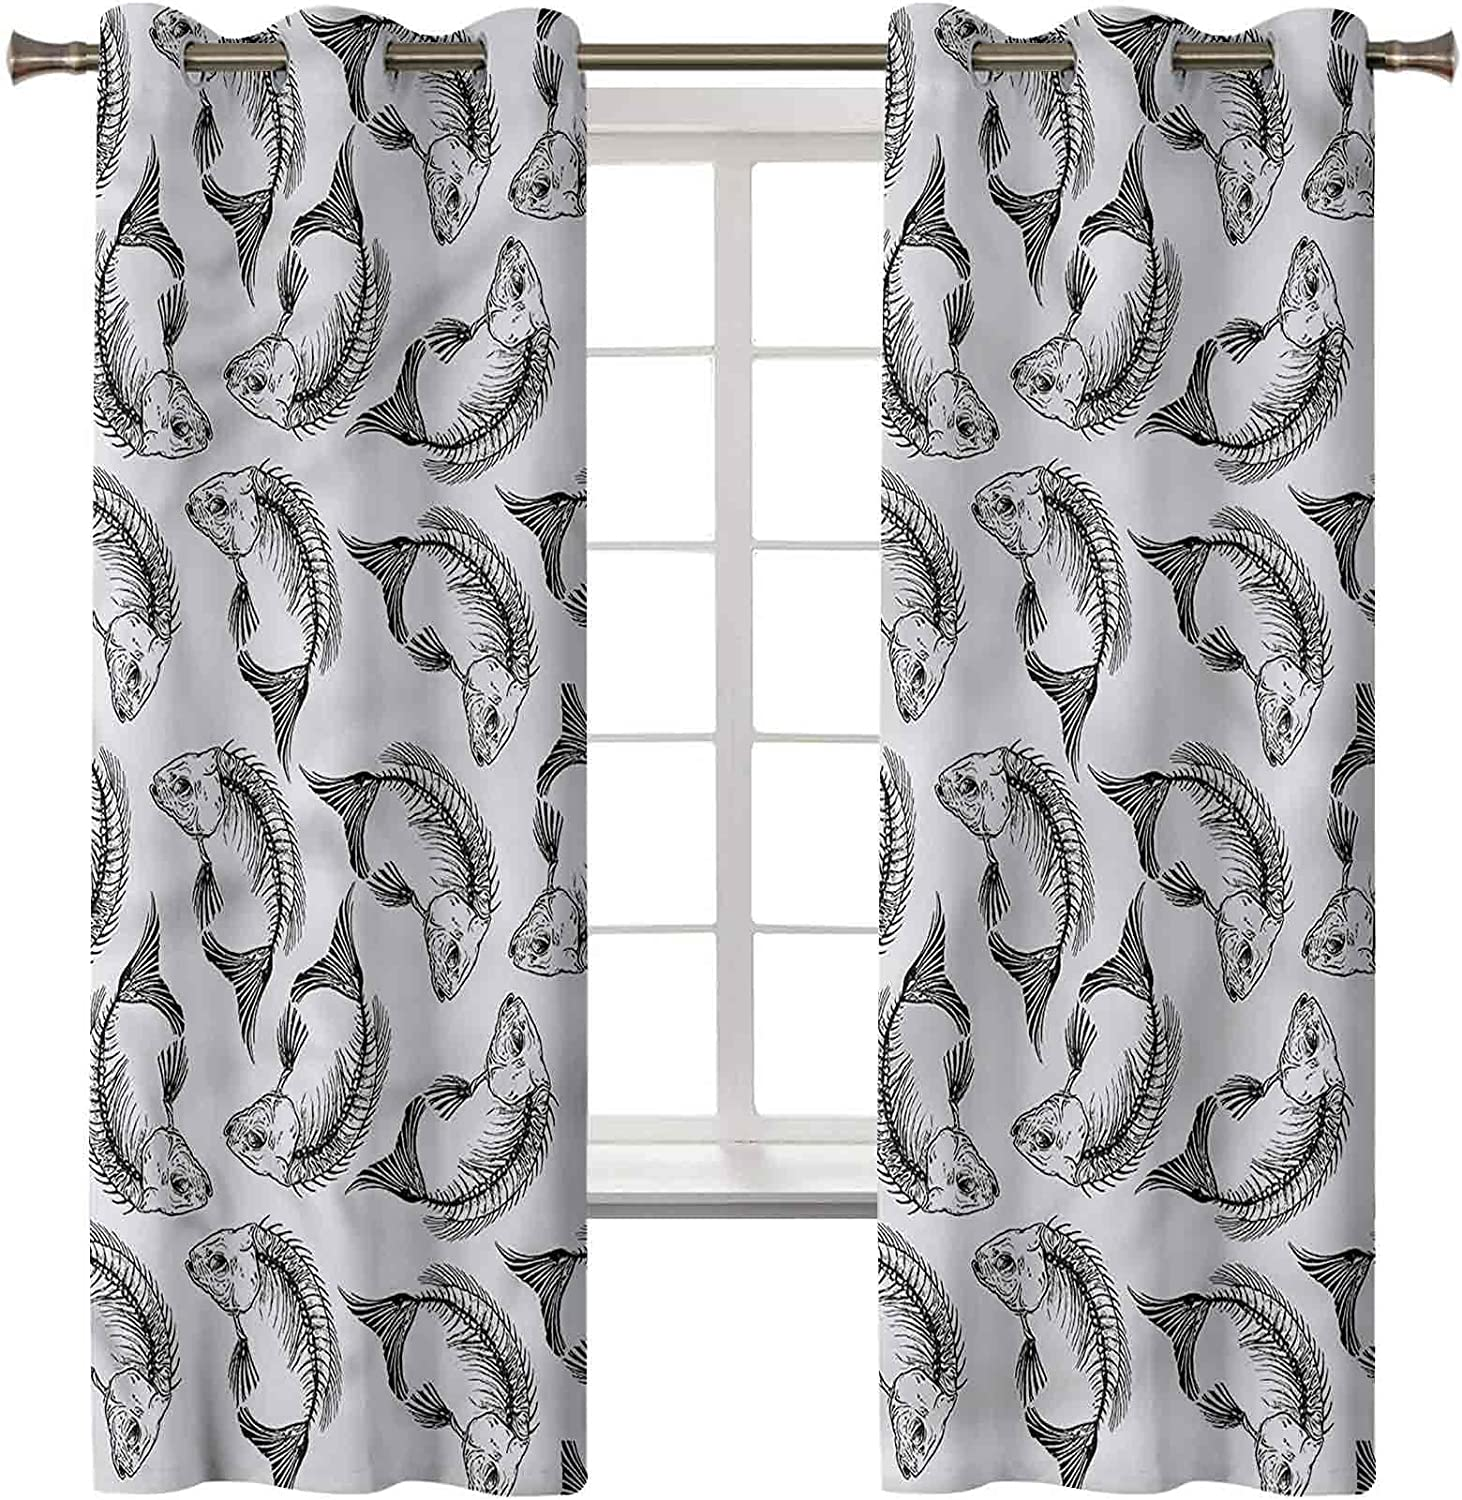 Blackout Window Popularity Curtain Energy Smart Treatment Max 53% OFF Sk Drapes